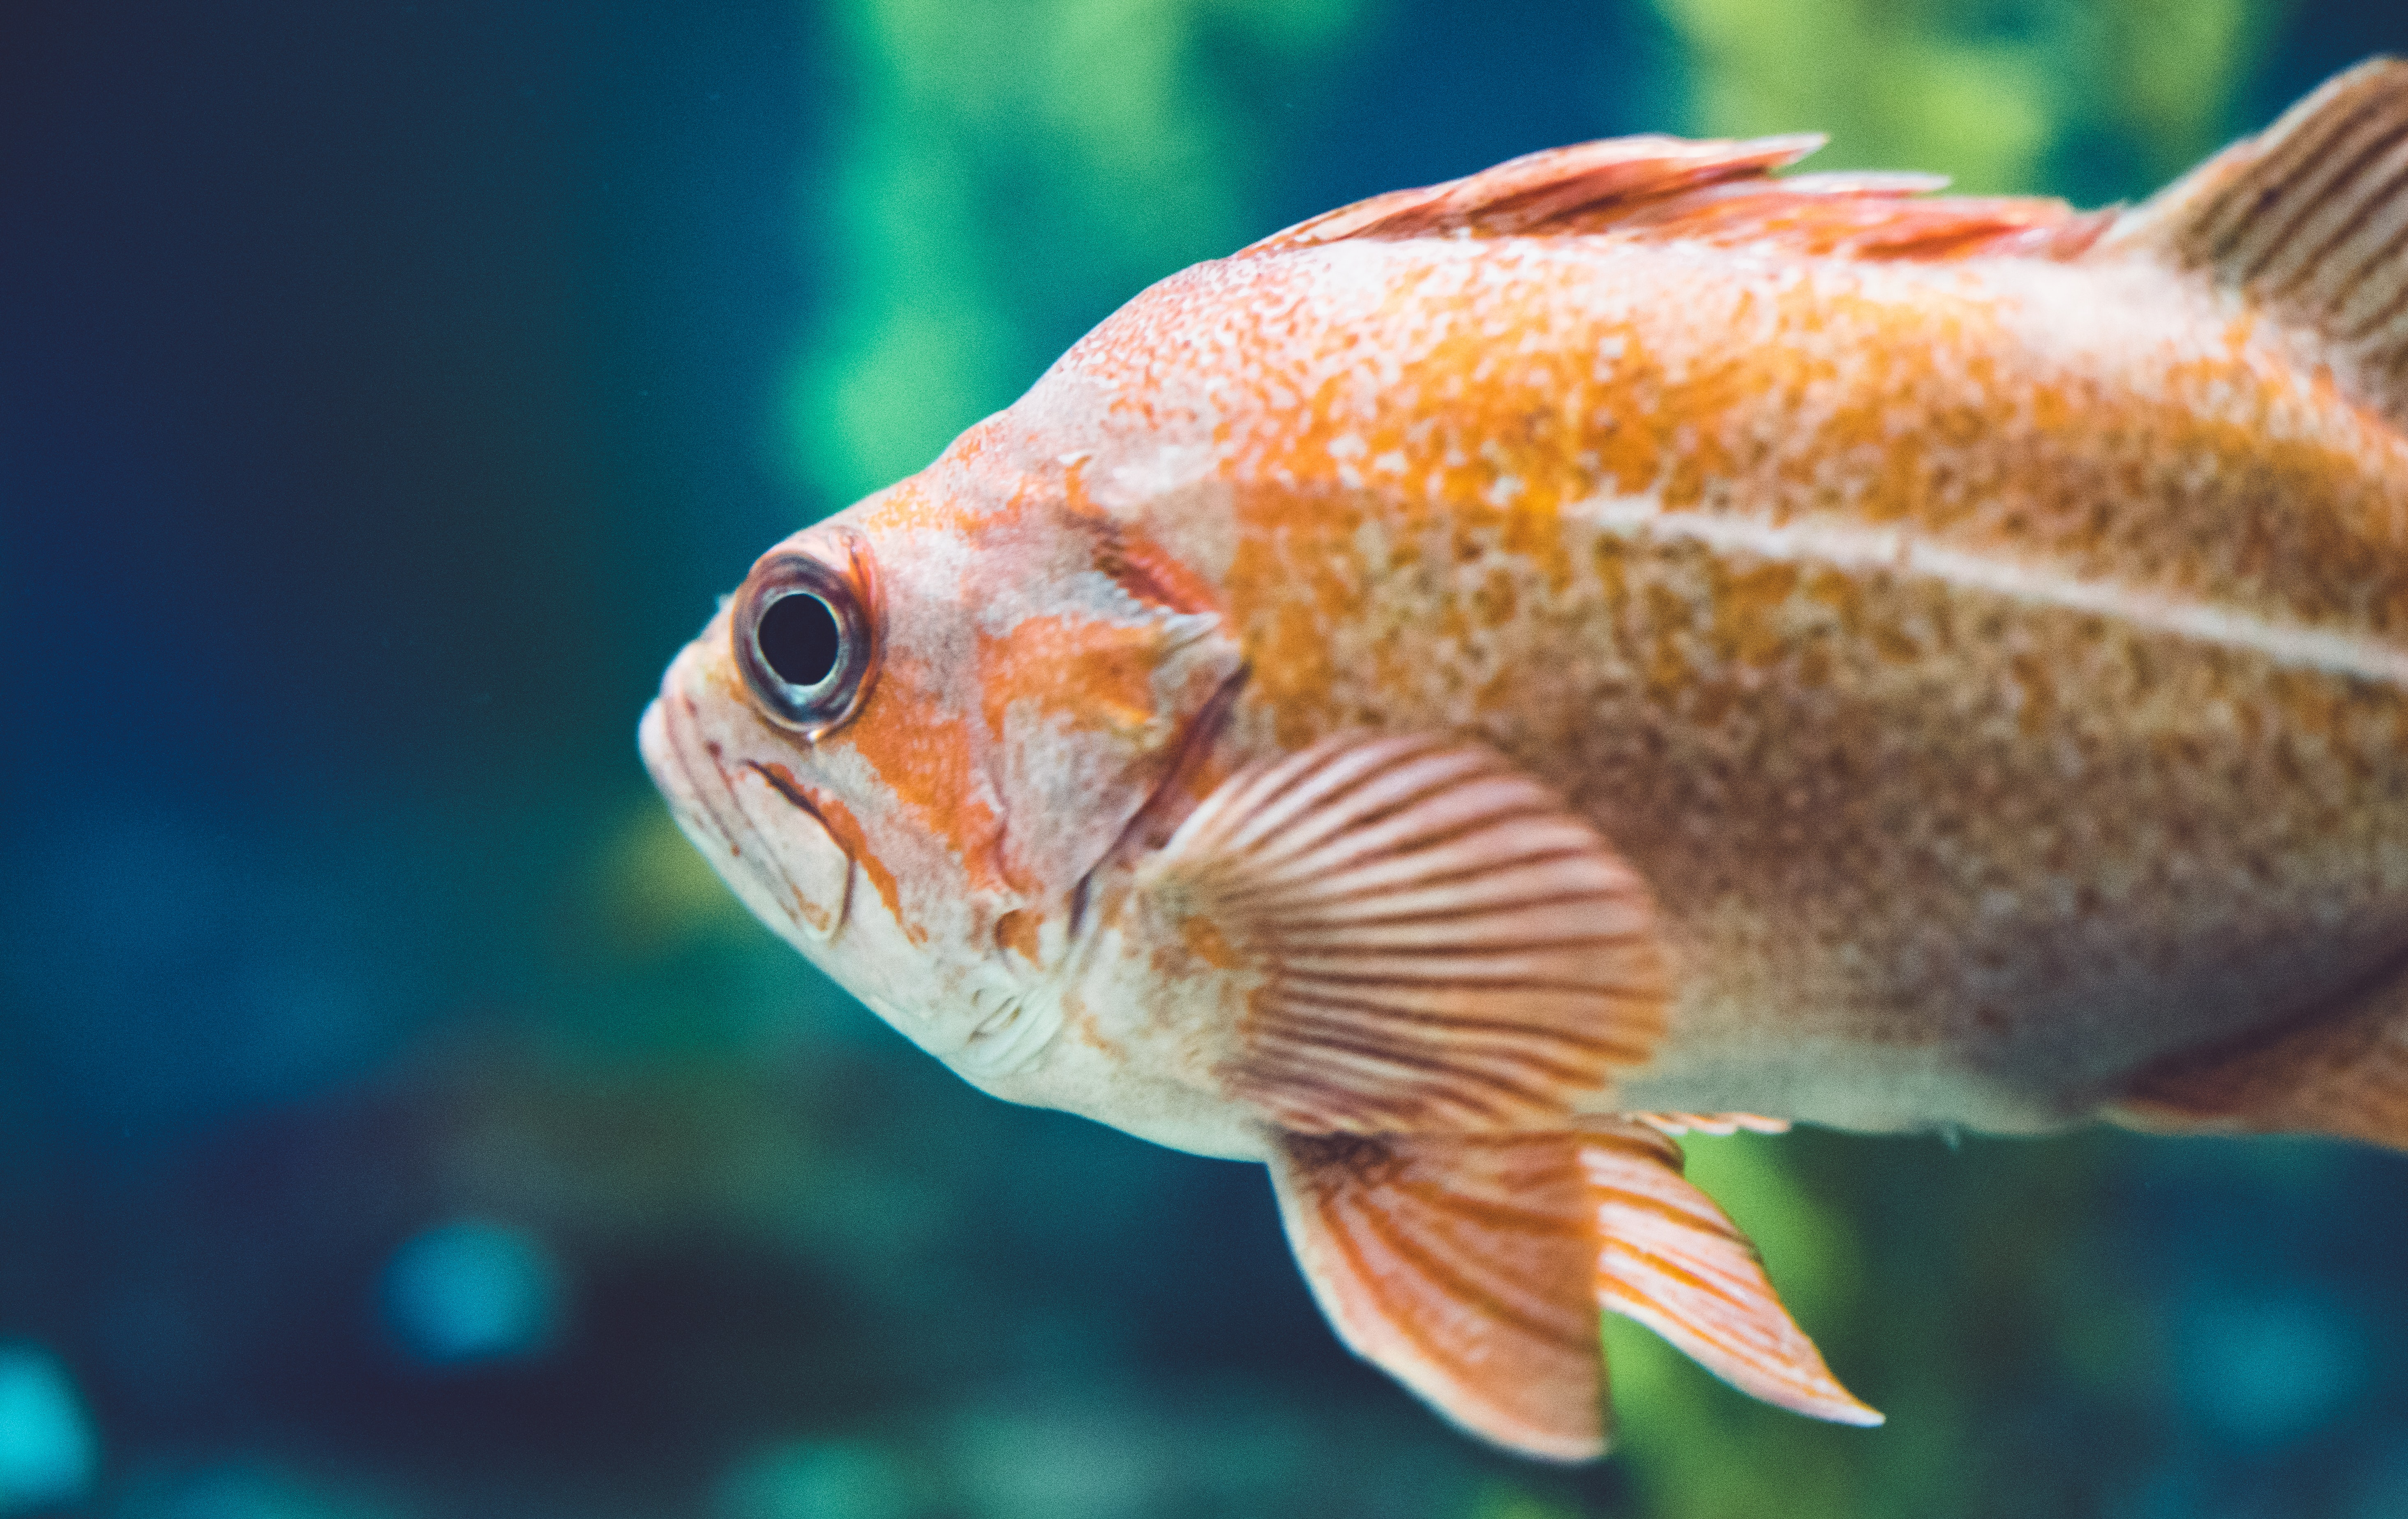 orange fish closeup photography